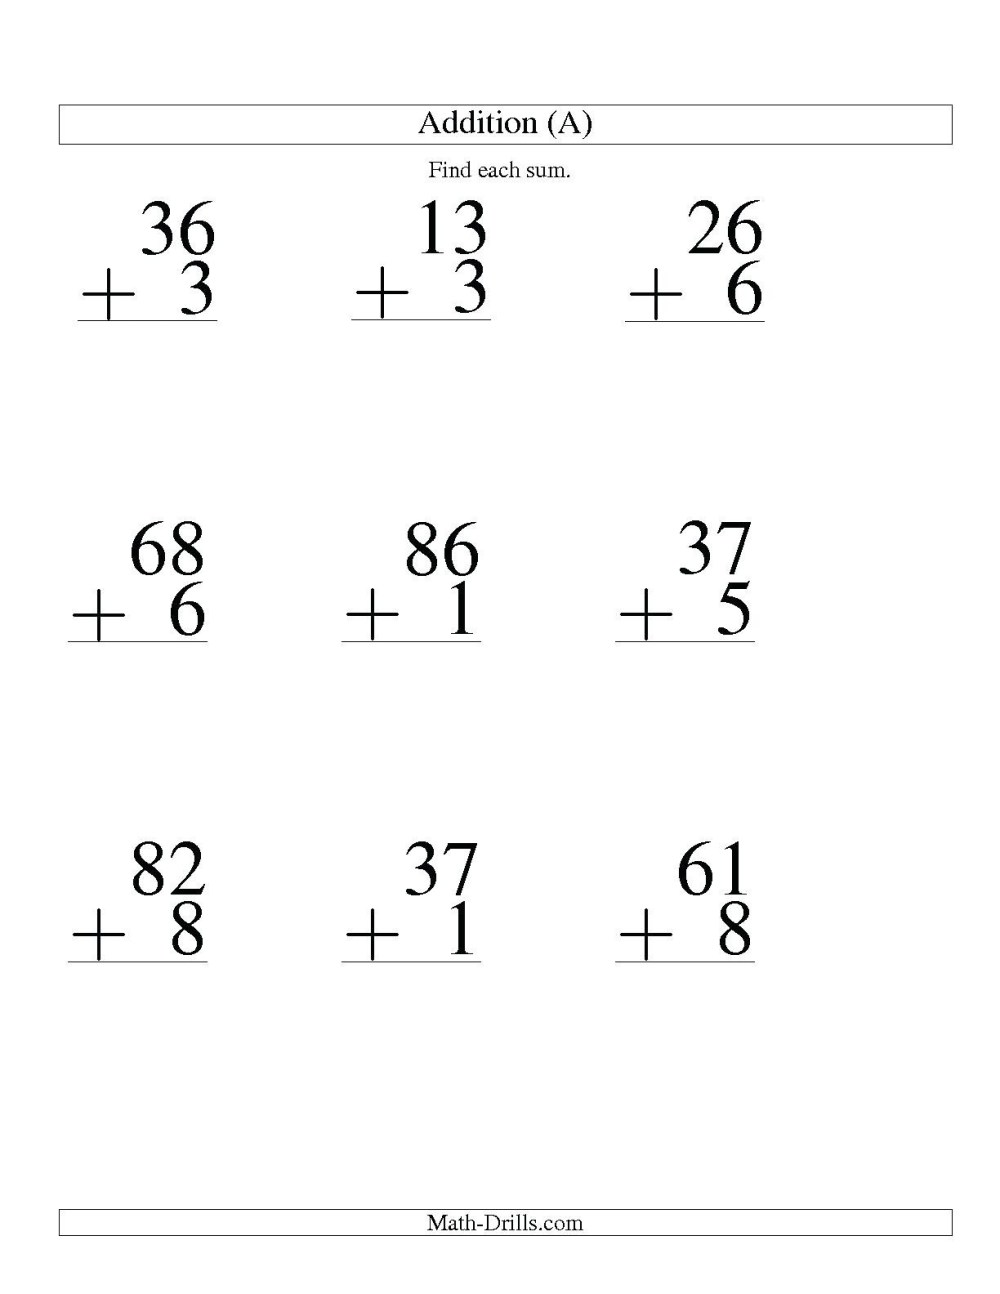 medium resolution of 5 Free Math Worksheets First Grade 1 Addition Adding 2 Digit Plus 1 Digit  No Regrouping - apocalomegaproductions.com